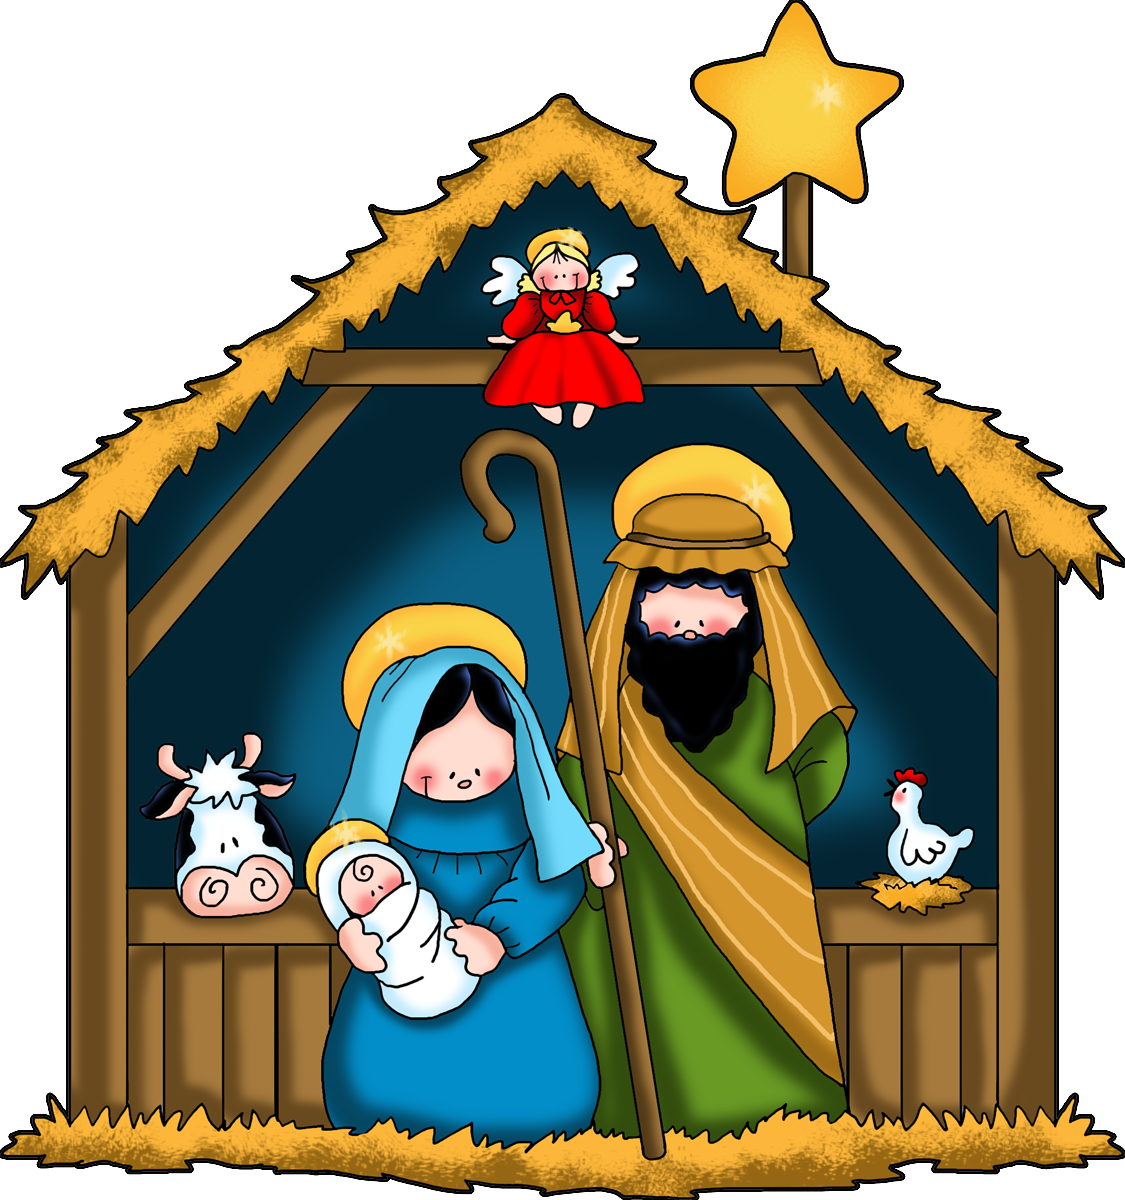 Nativity Scene Clipart New Calendar Temp-Nativity Scene Clipart New Calendar Template Site-16